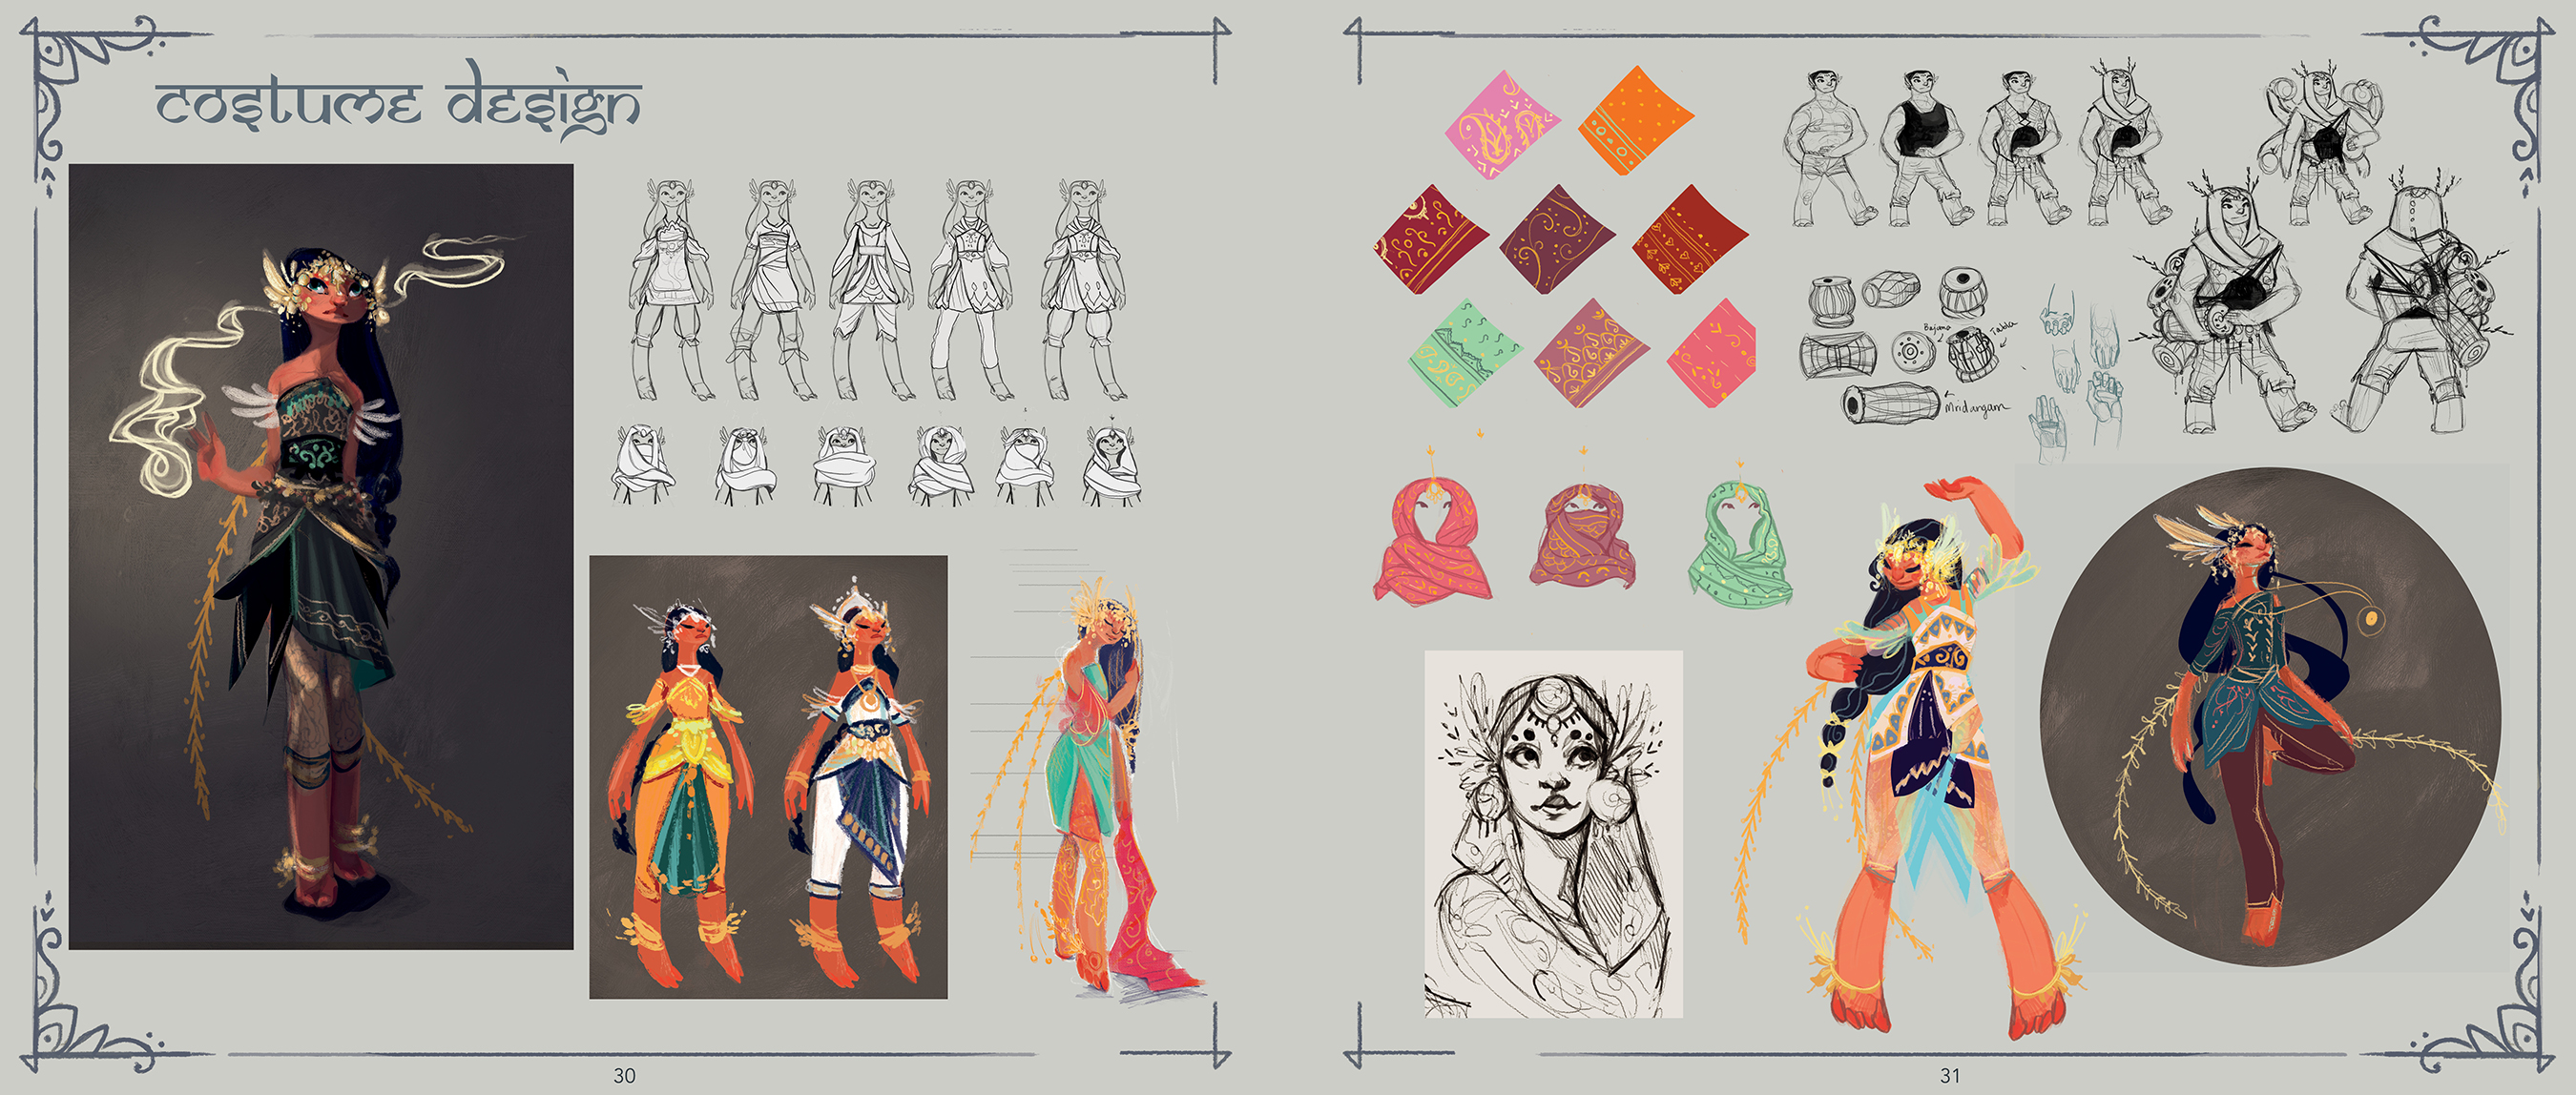 Costume design spread